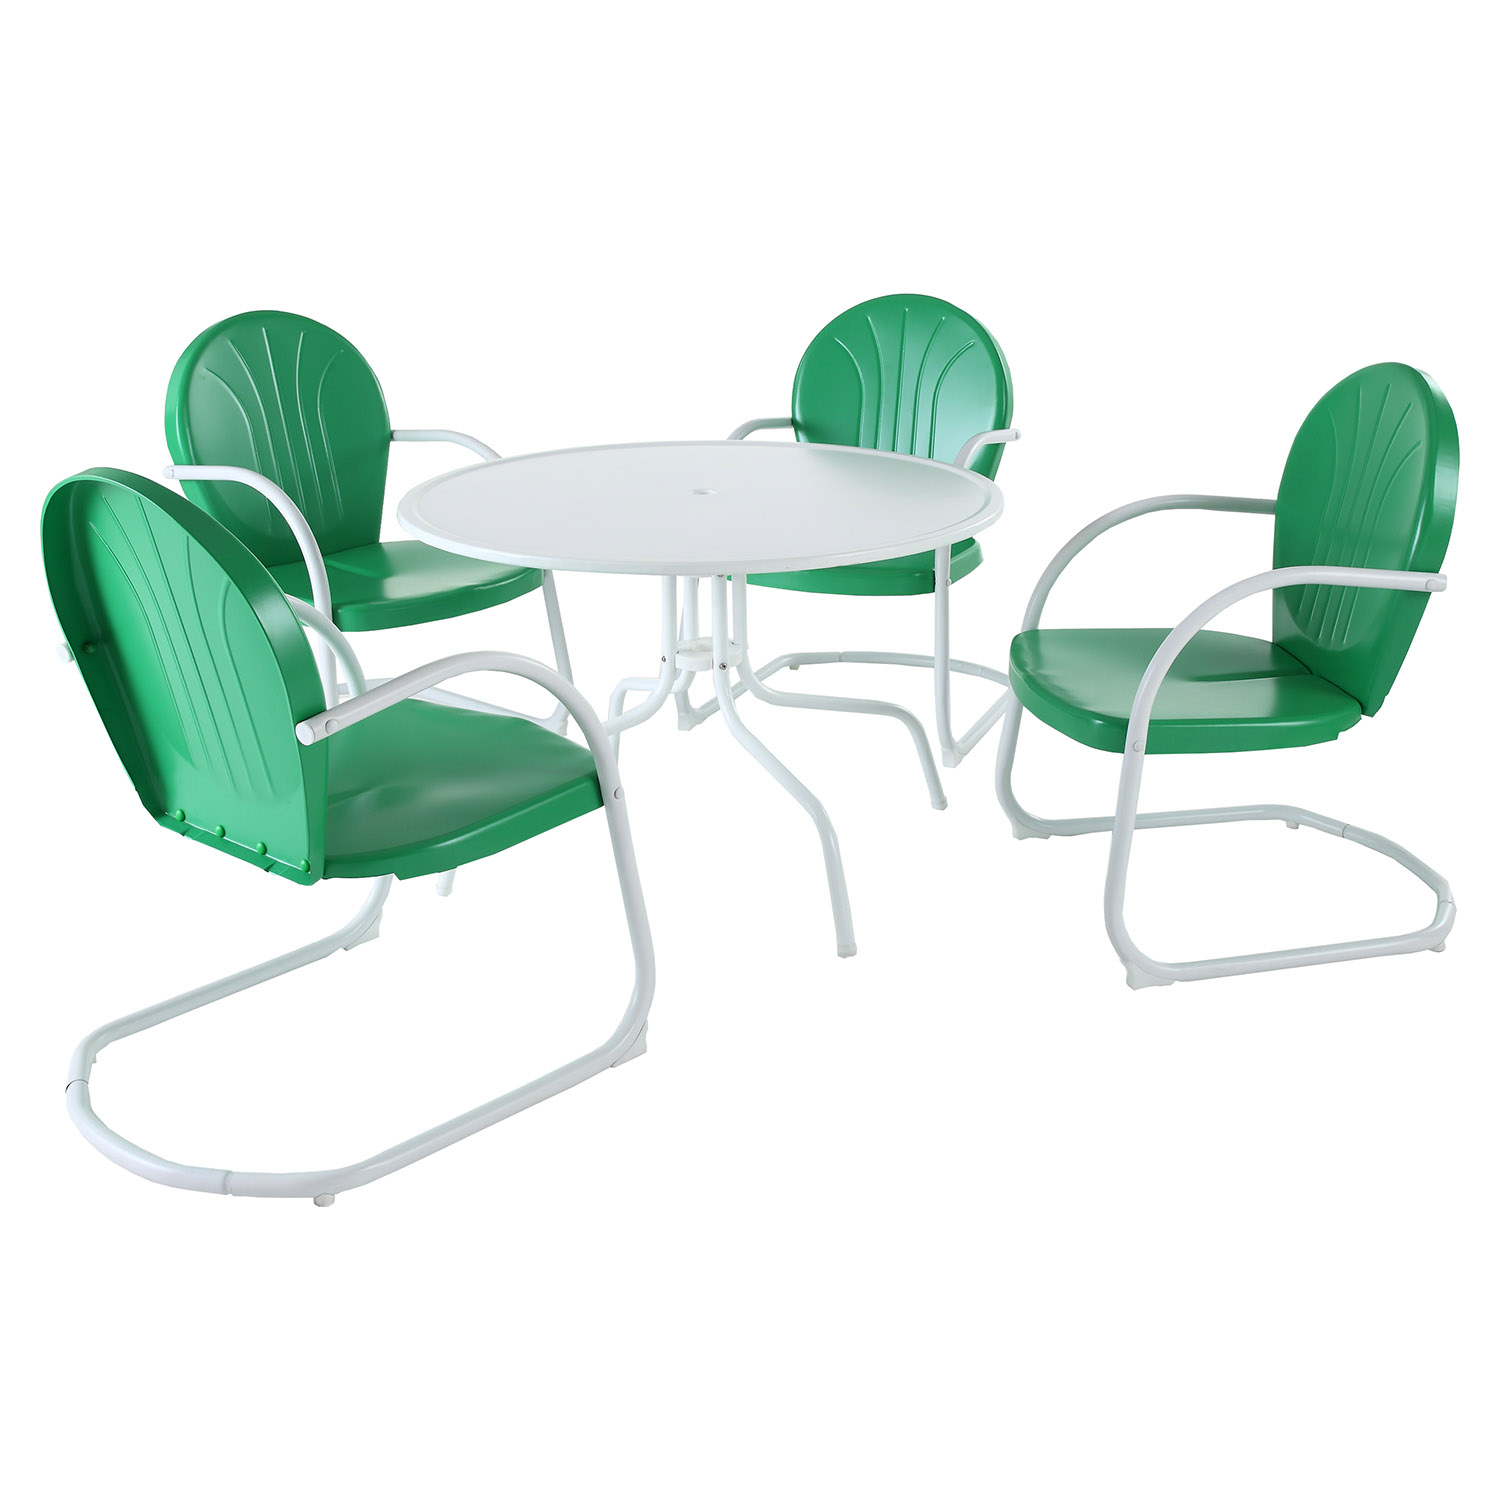 "Griffith Metal 40"" 5-Piece Outdoor Dining Set - Green Chairs, White Table"